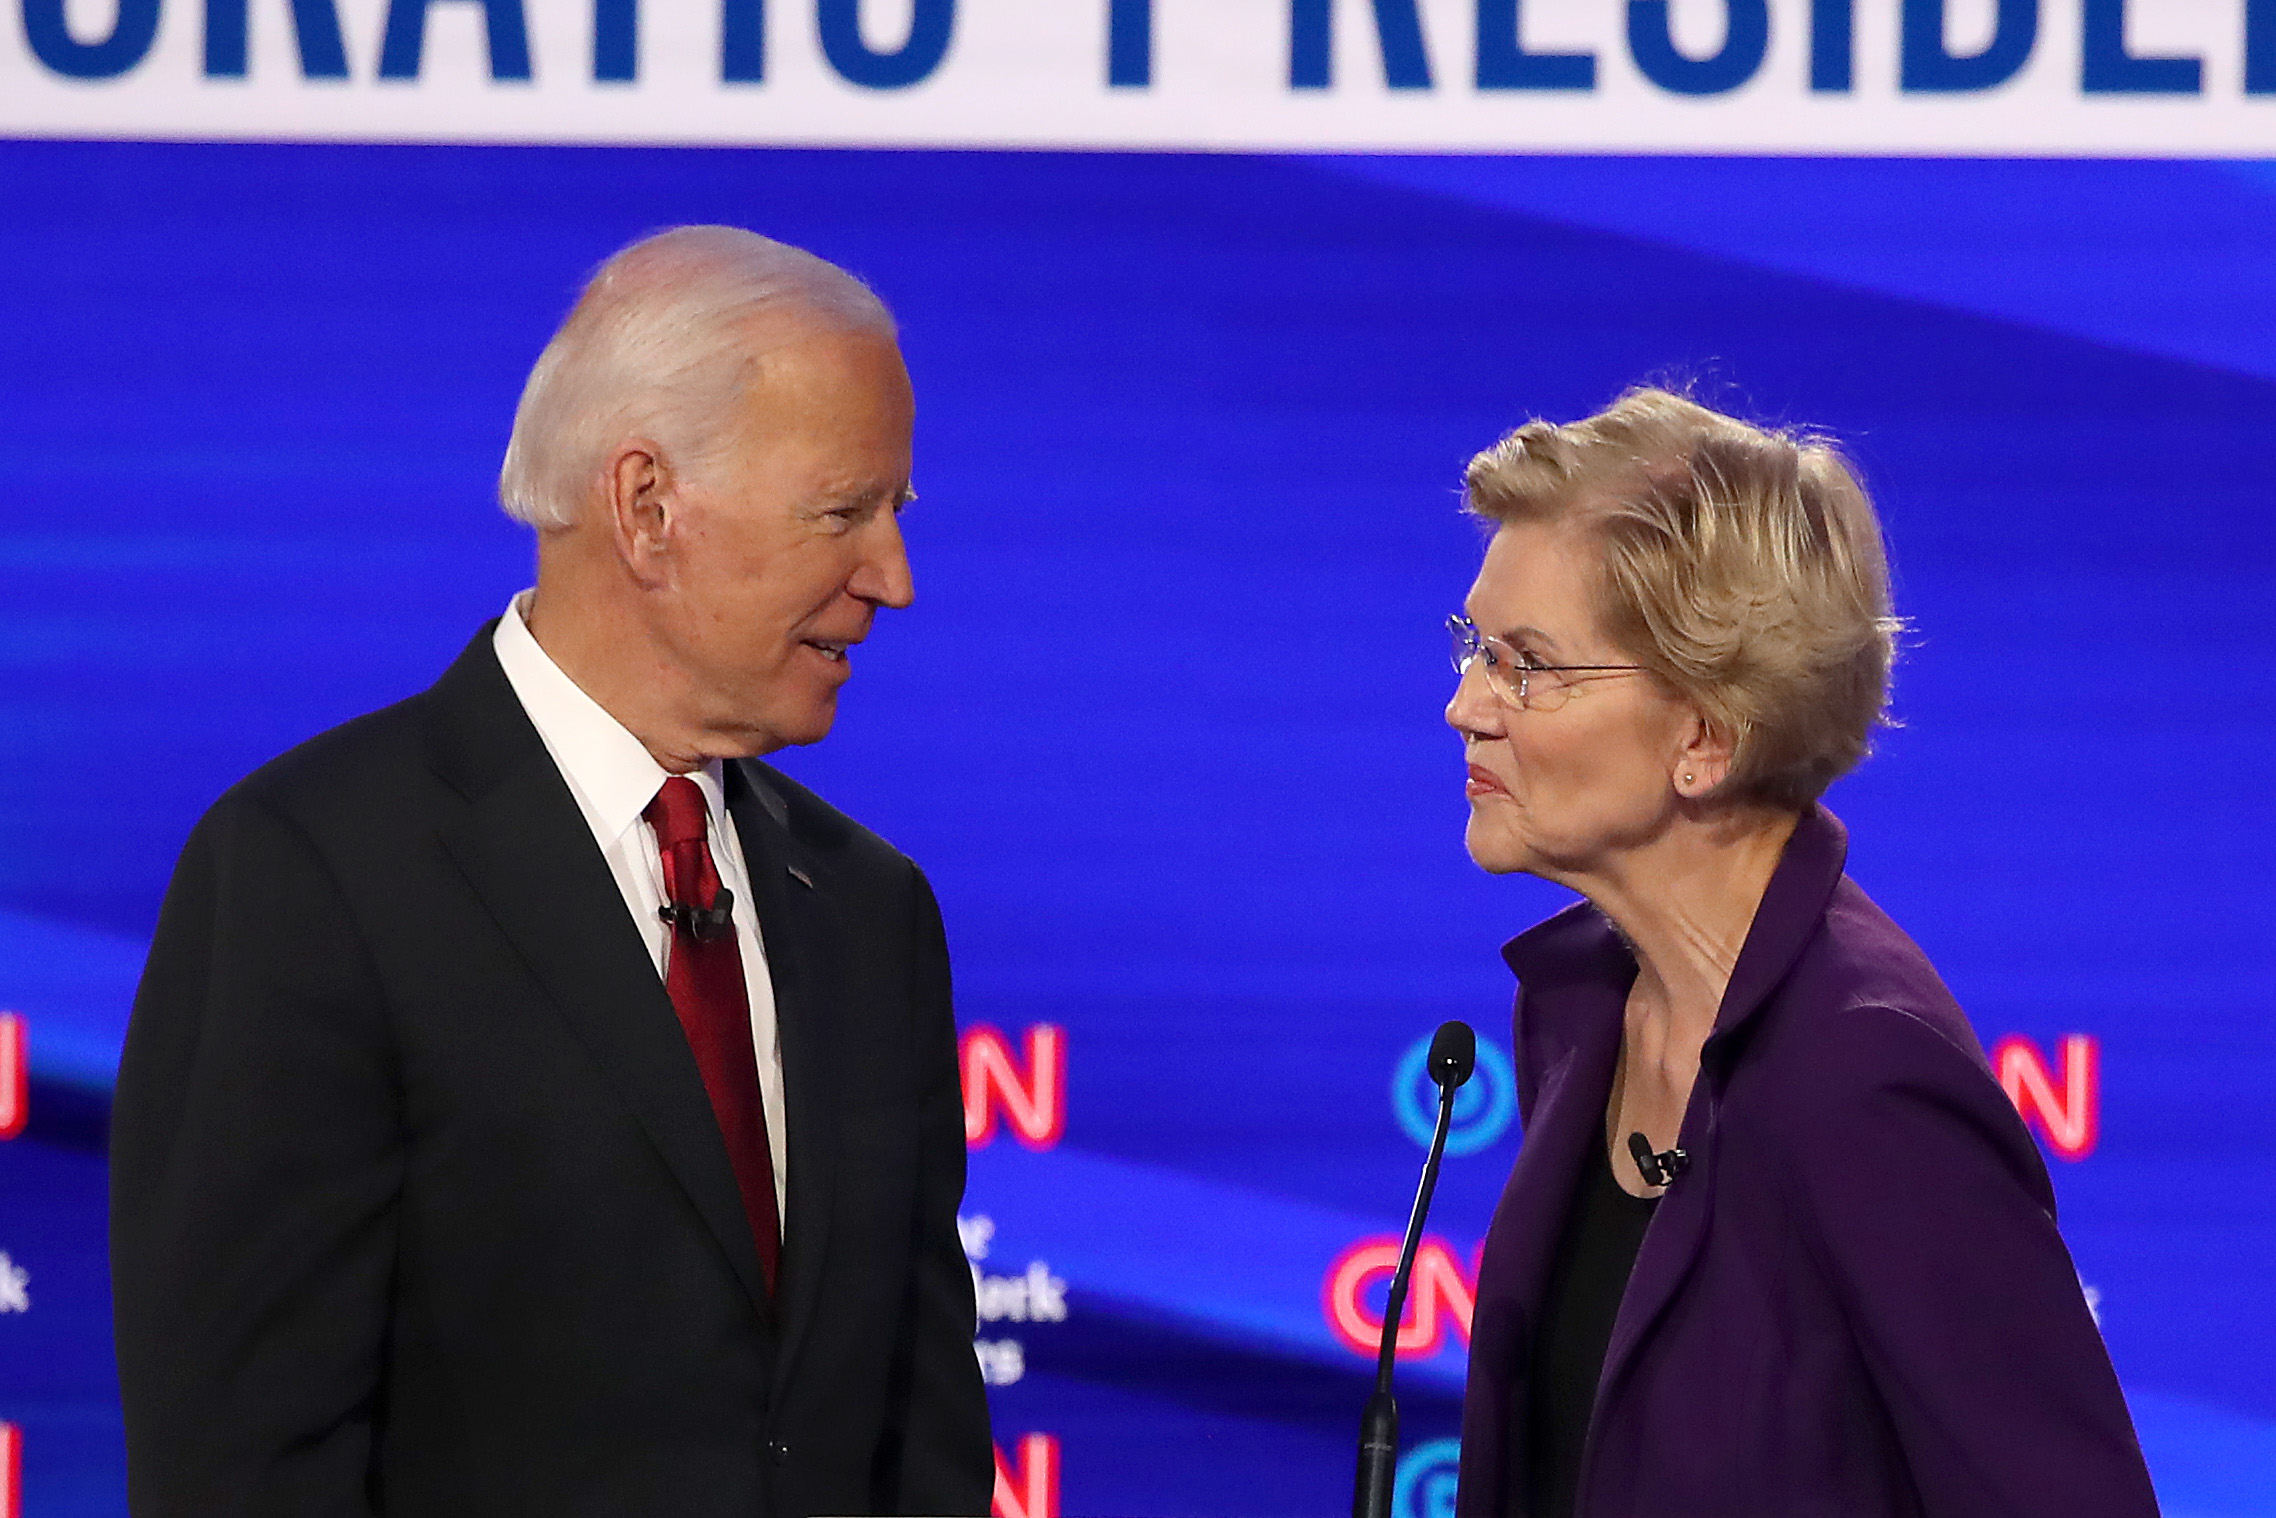 Elizabeth Warren raised five times as much money from Big Tech as Joe Biden did